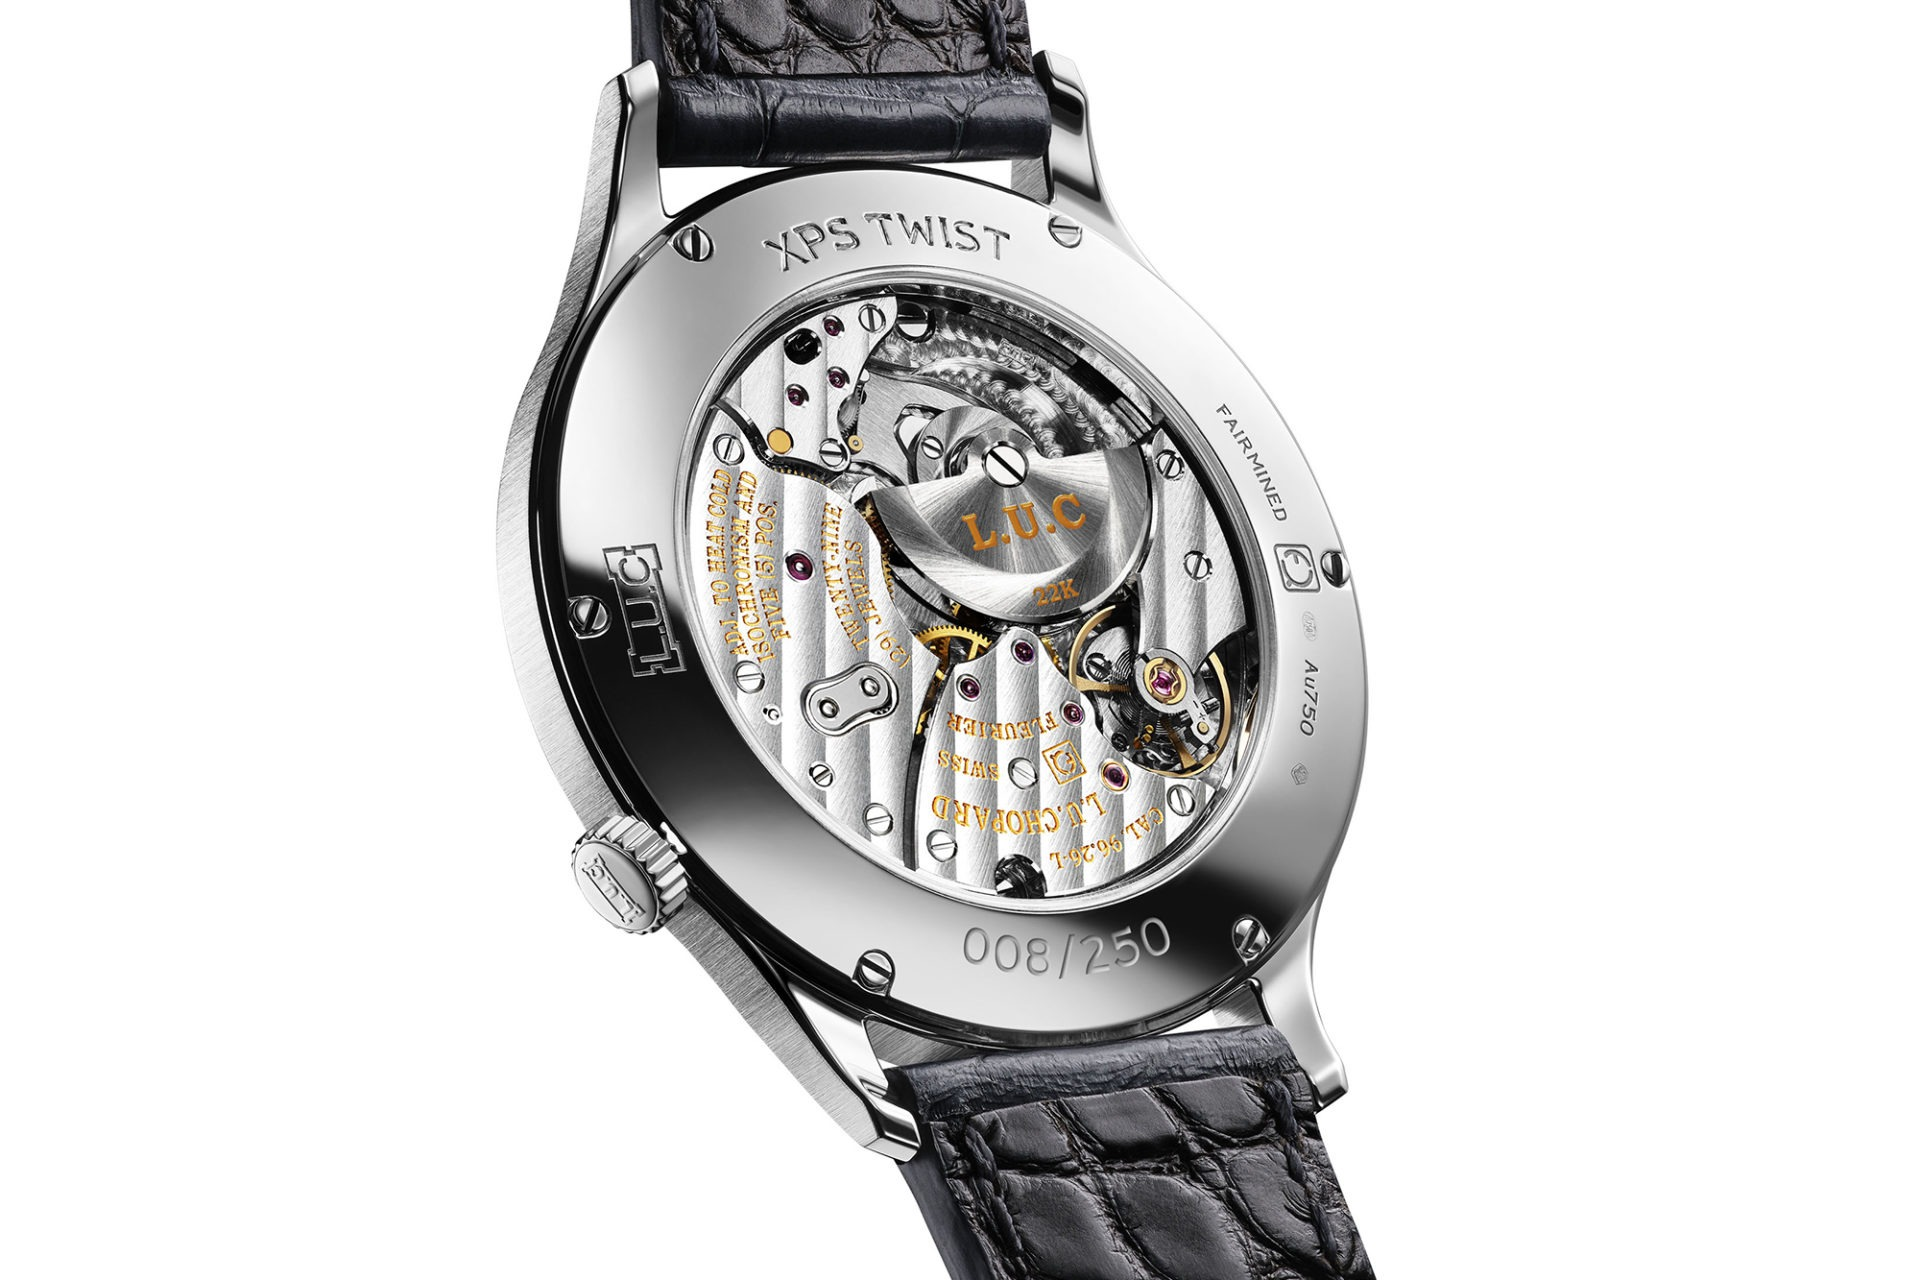 Chopard L.U.C XPS Twist QF Baselworld 2019